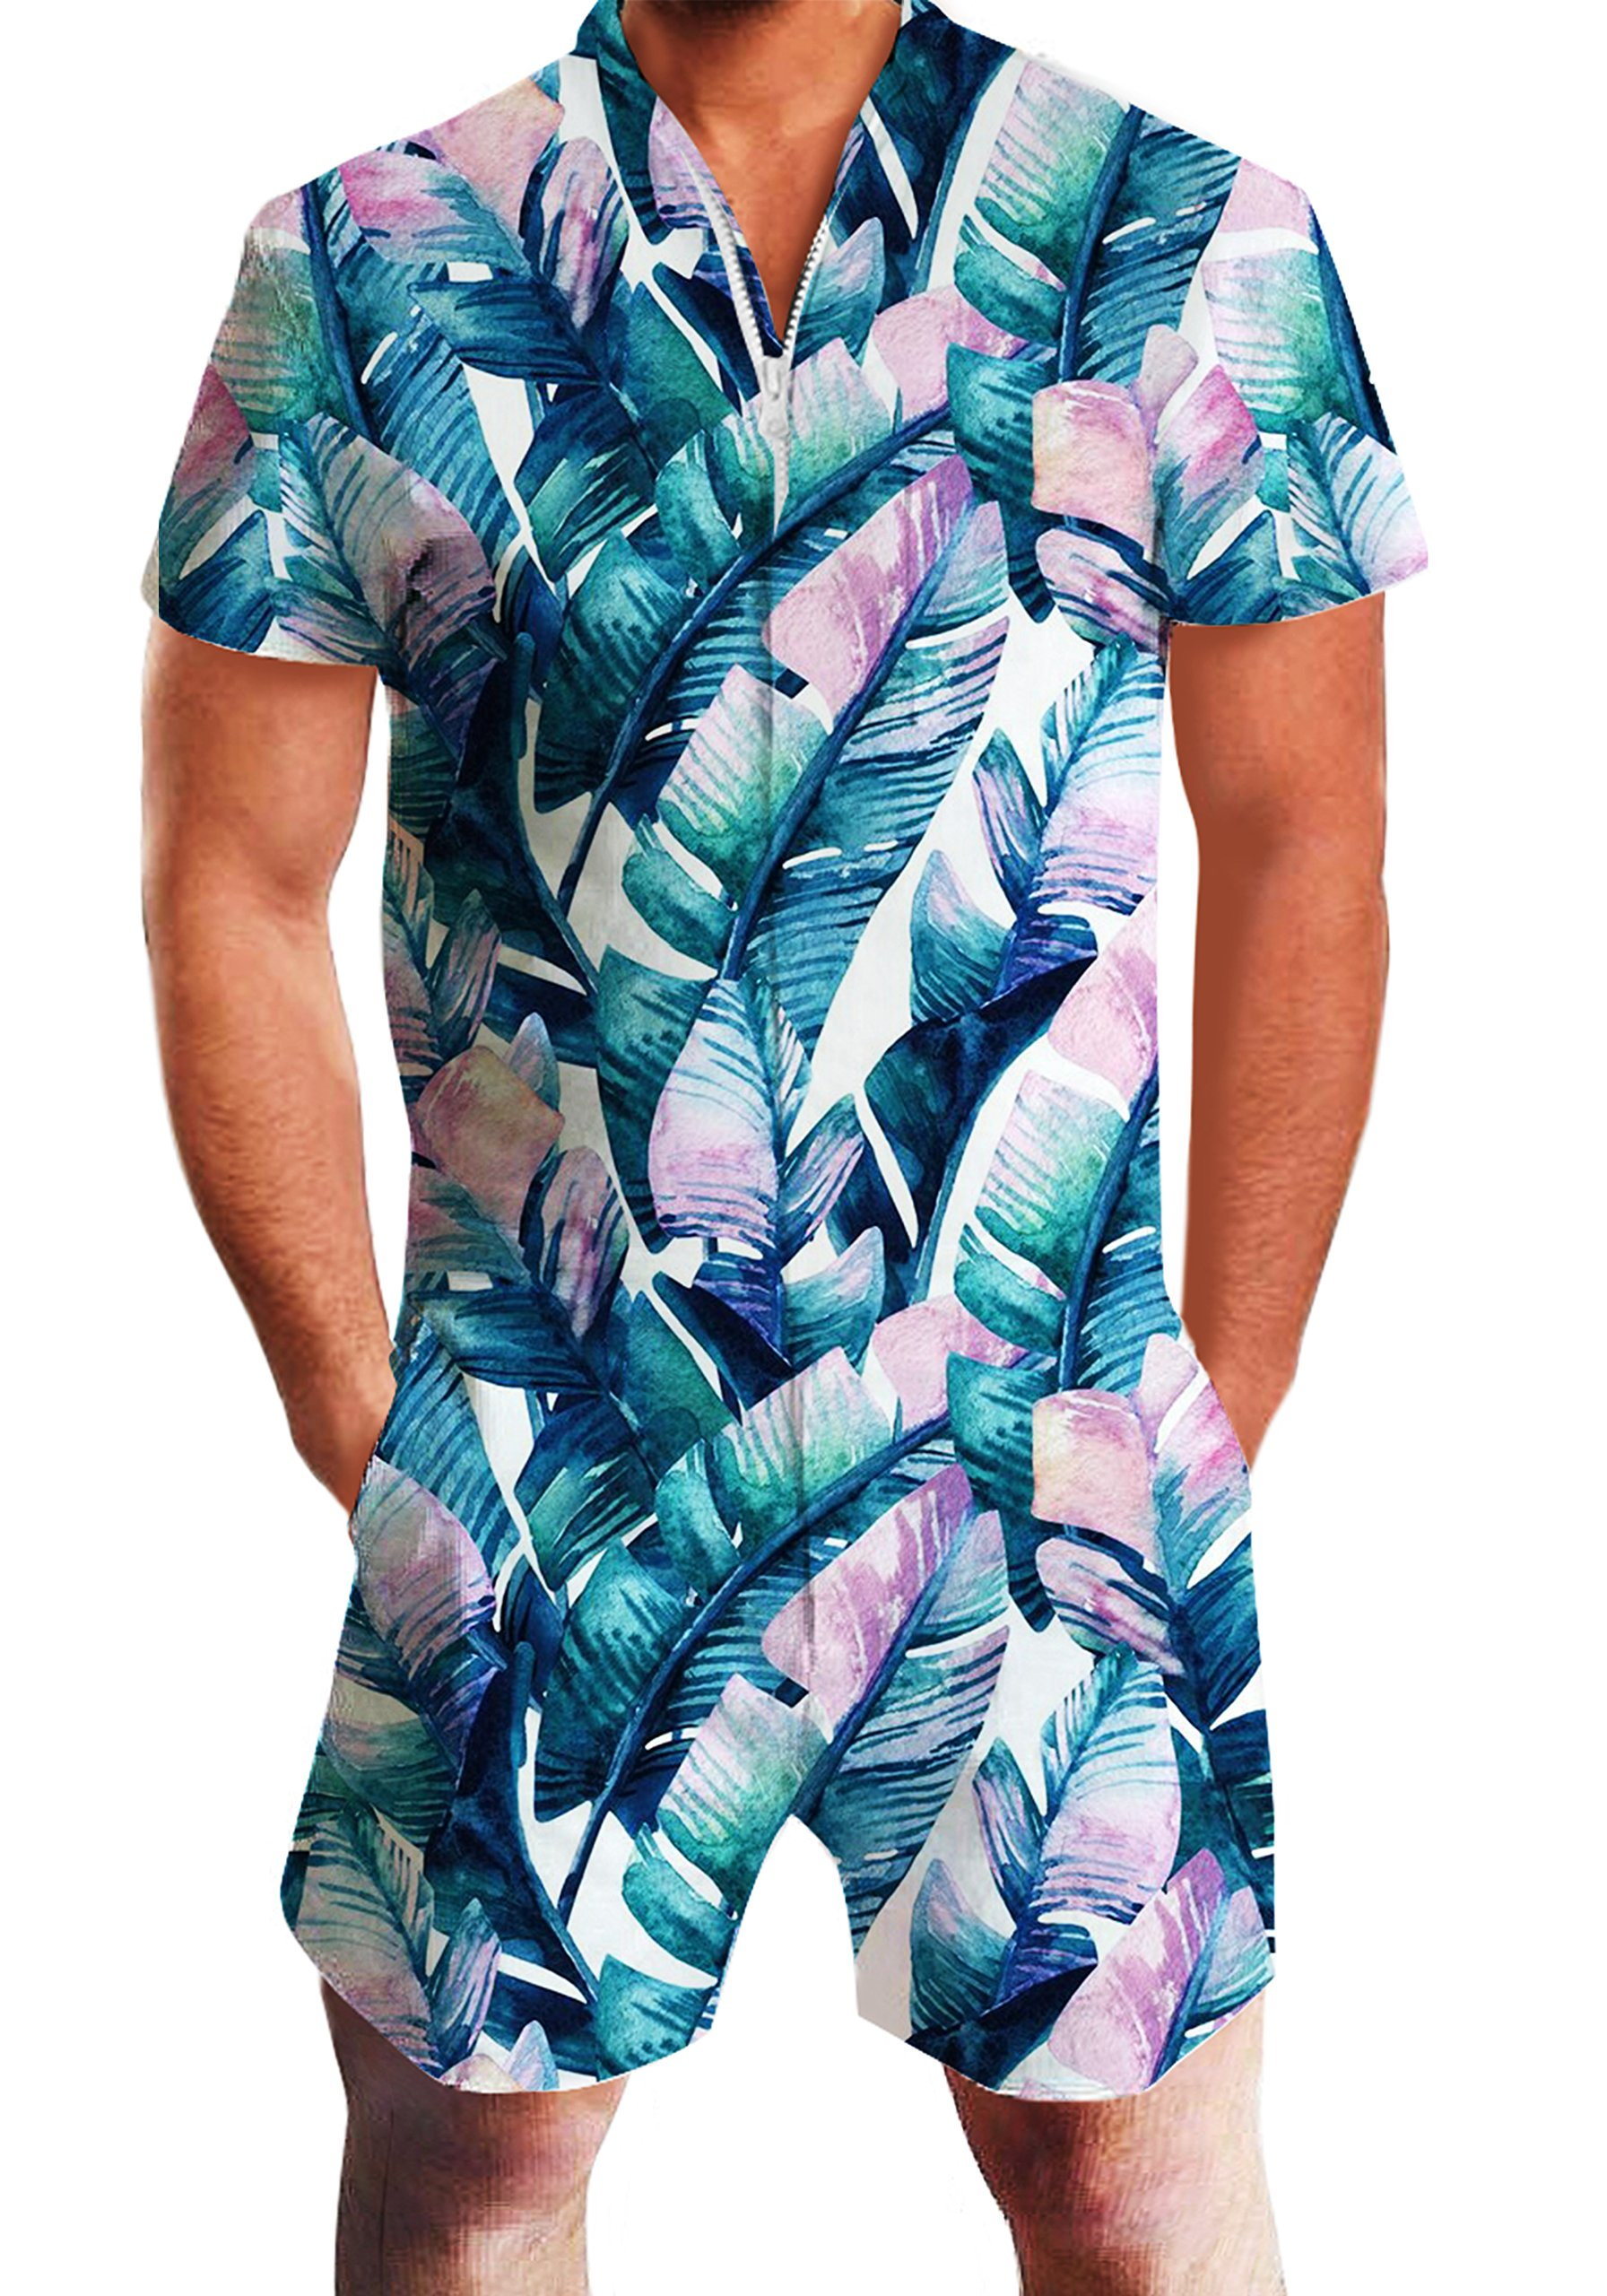 61cc6aa363f6 Galleon - Mens Male Galaxy Nebula Space Printed Hipster Novelty Shorts  Cargo Pants Tees Clothes Jumpsuits Rompers Overalls Leaves XL